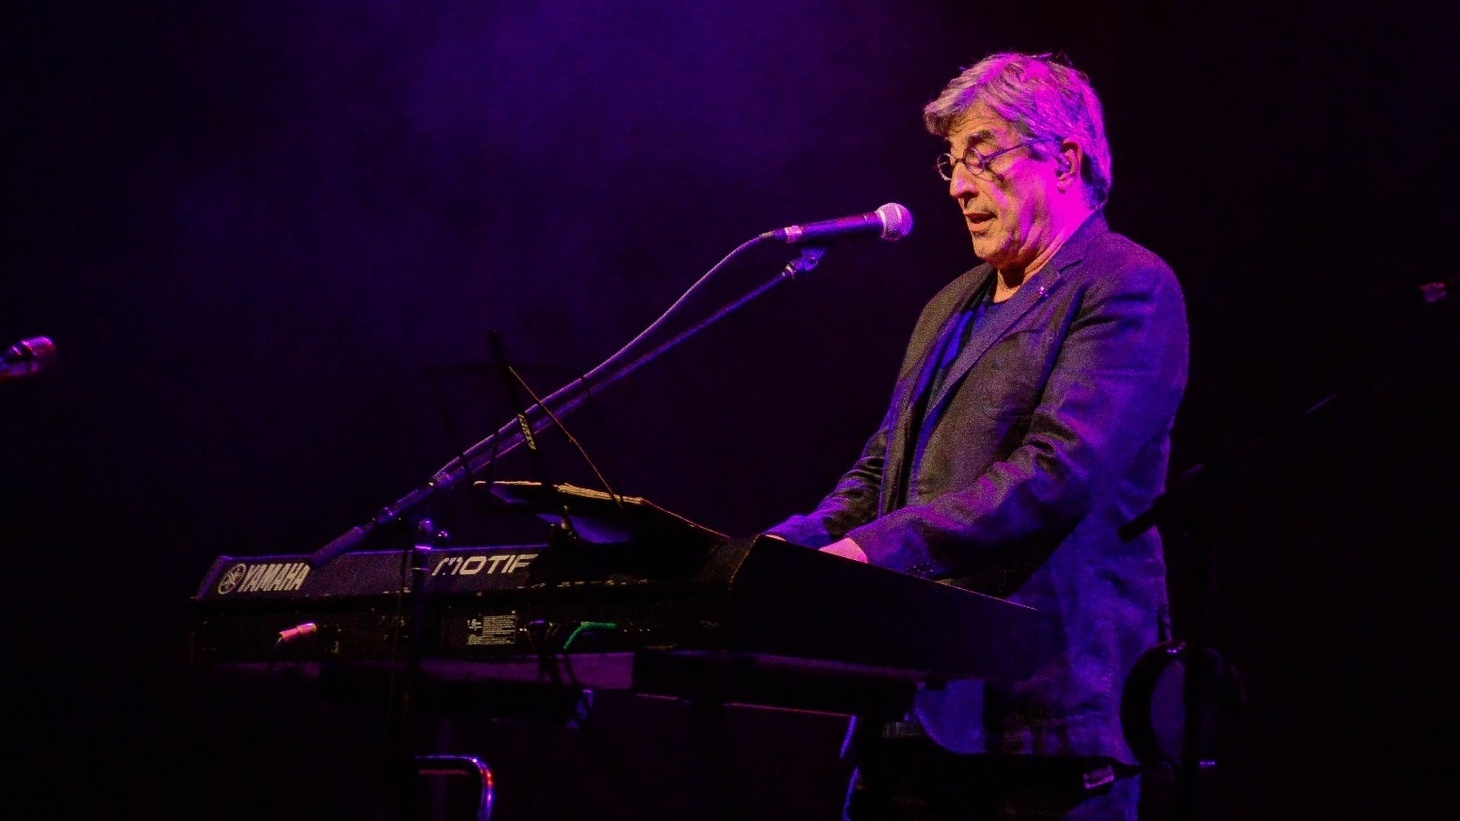 Brazilian singer-songwriter Ivan Lins comes to the Hollywood Bowl this month